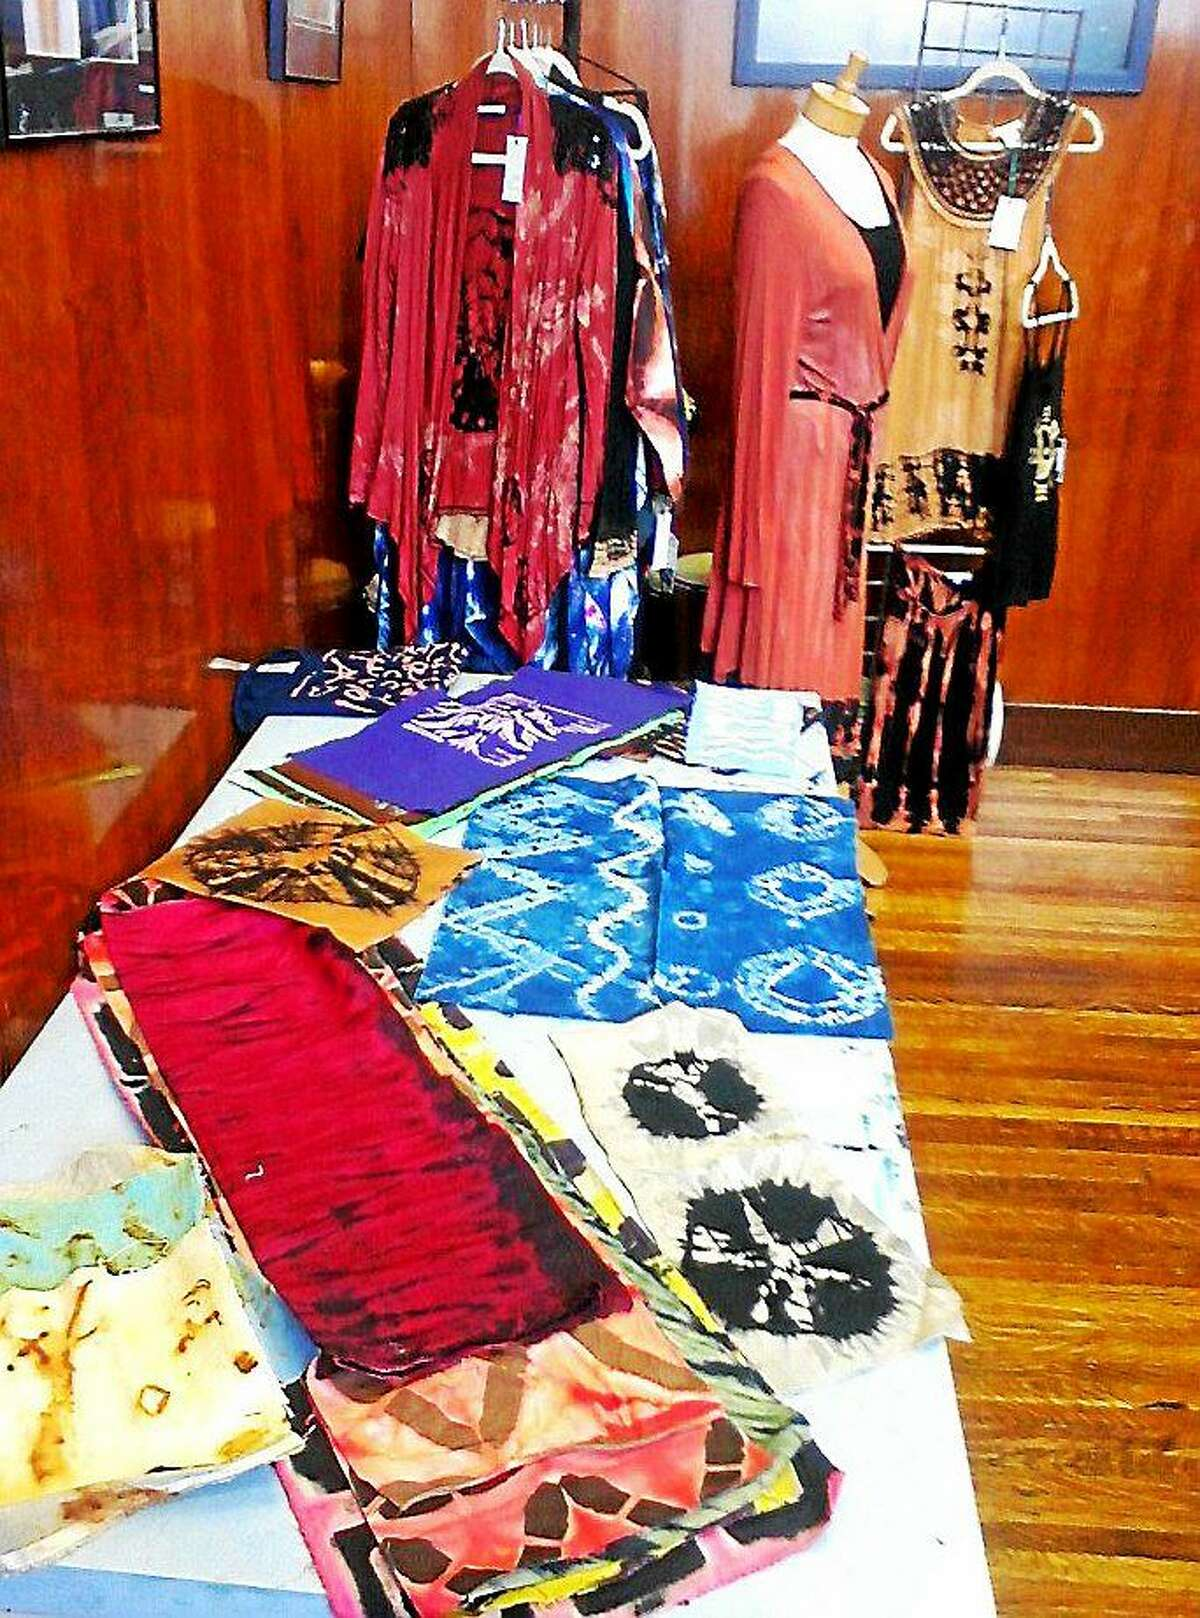 Contributed photo In Sheep's Clothing and artisans and friends will be weaving, spinning and crocheting at the Performance Hub in Torrington as part of the monthly Arts Walk downtown.